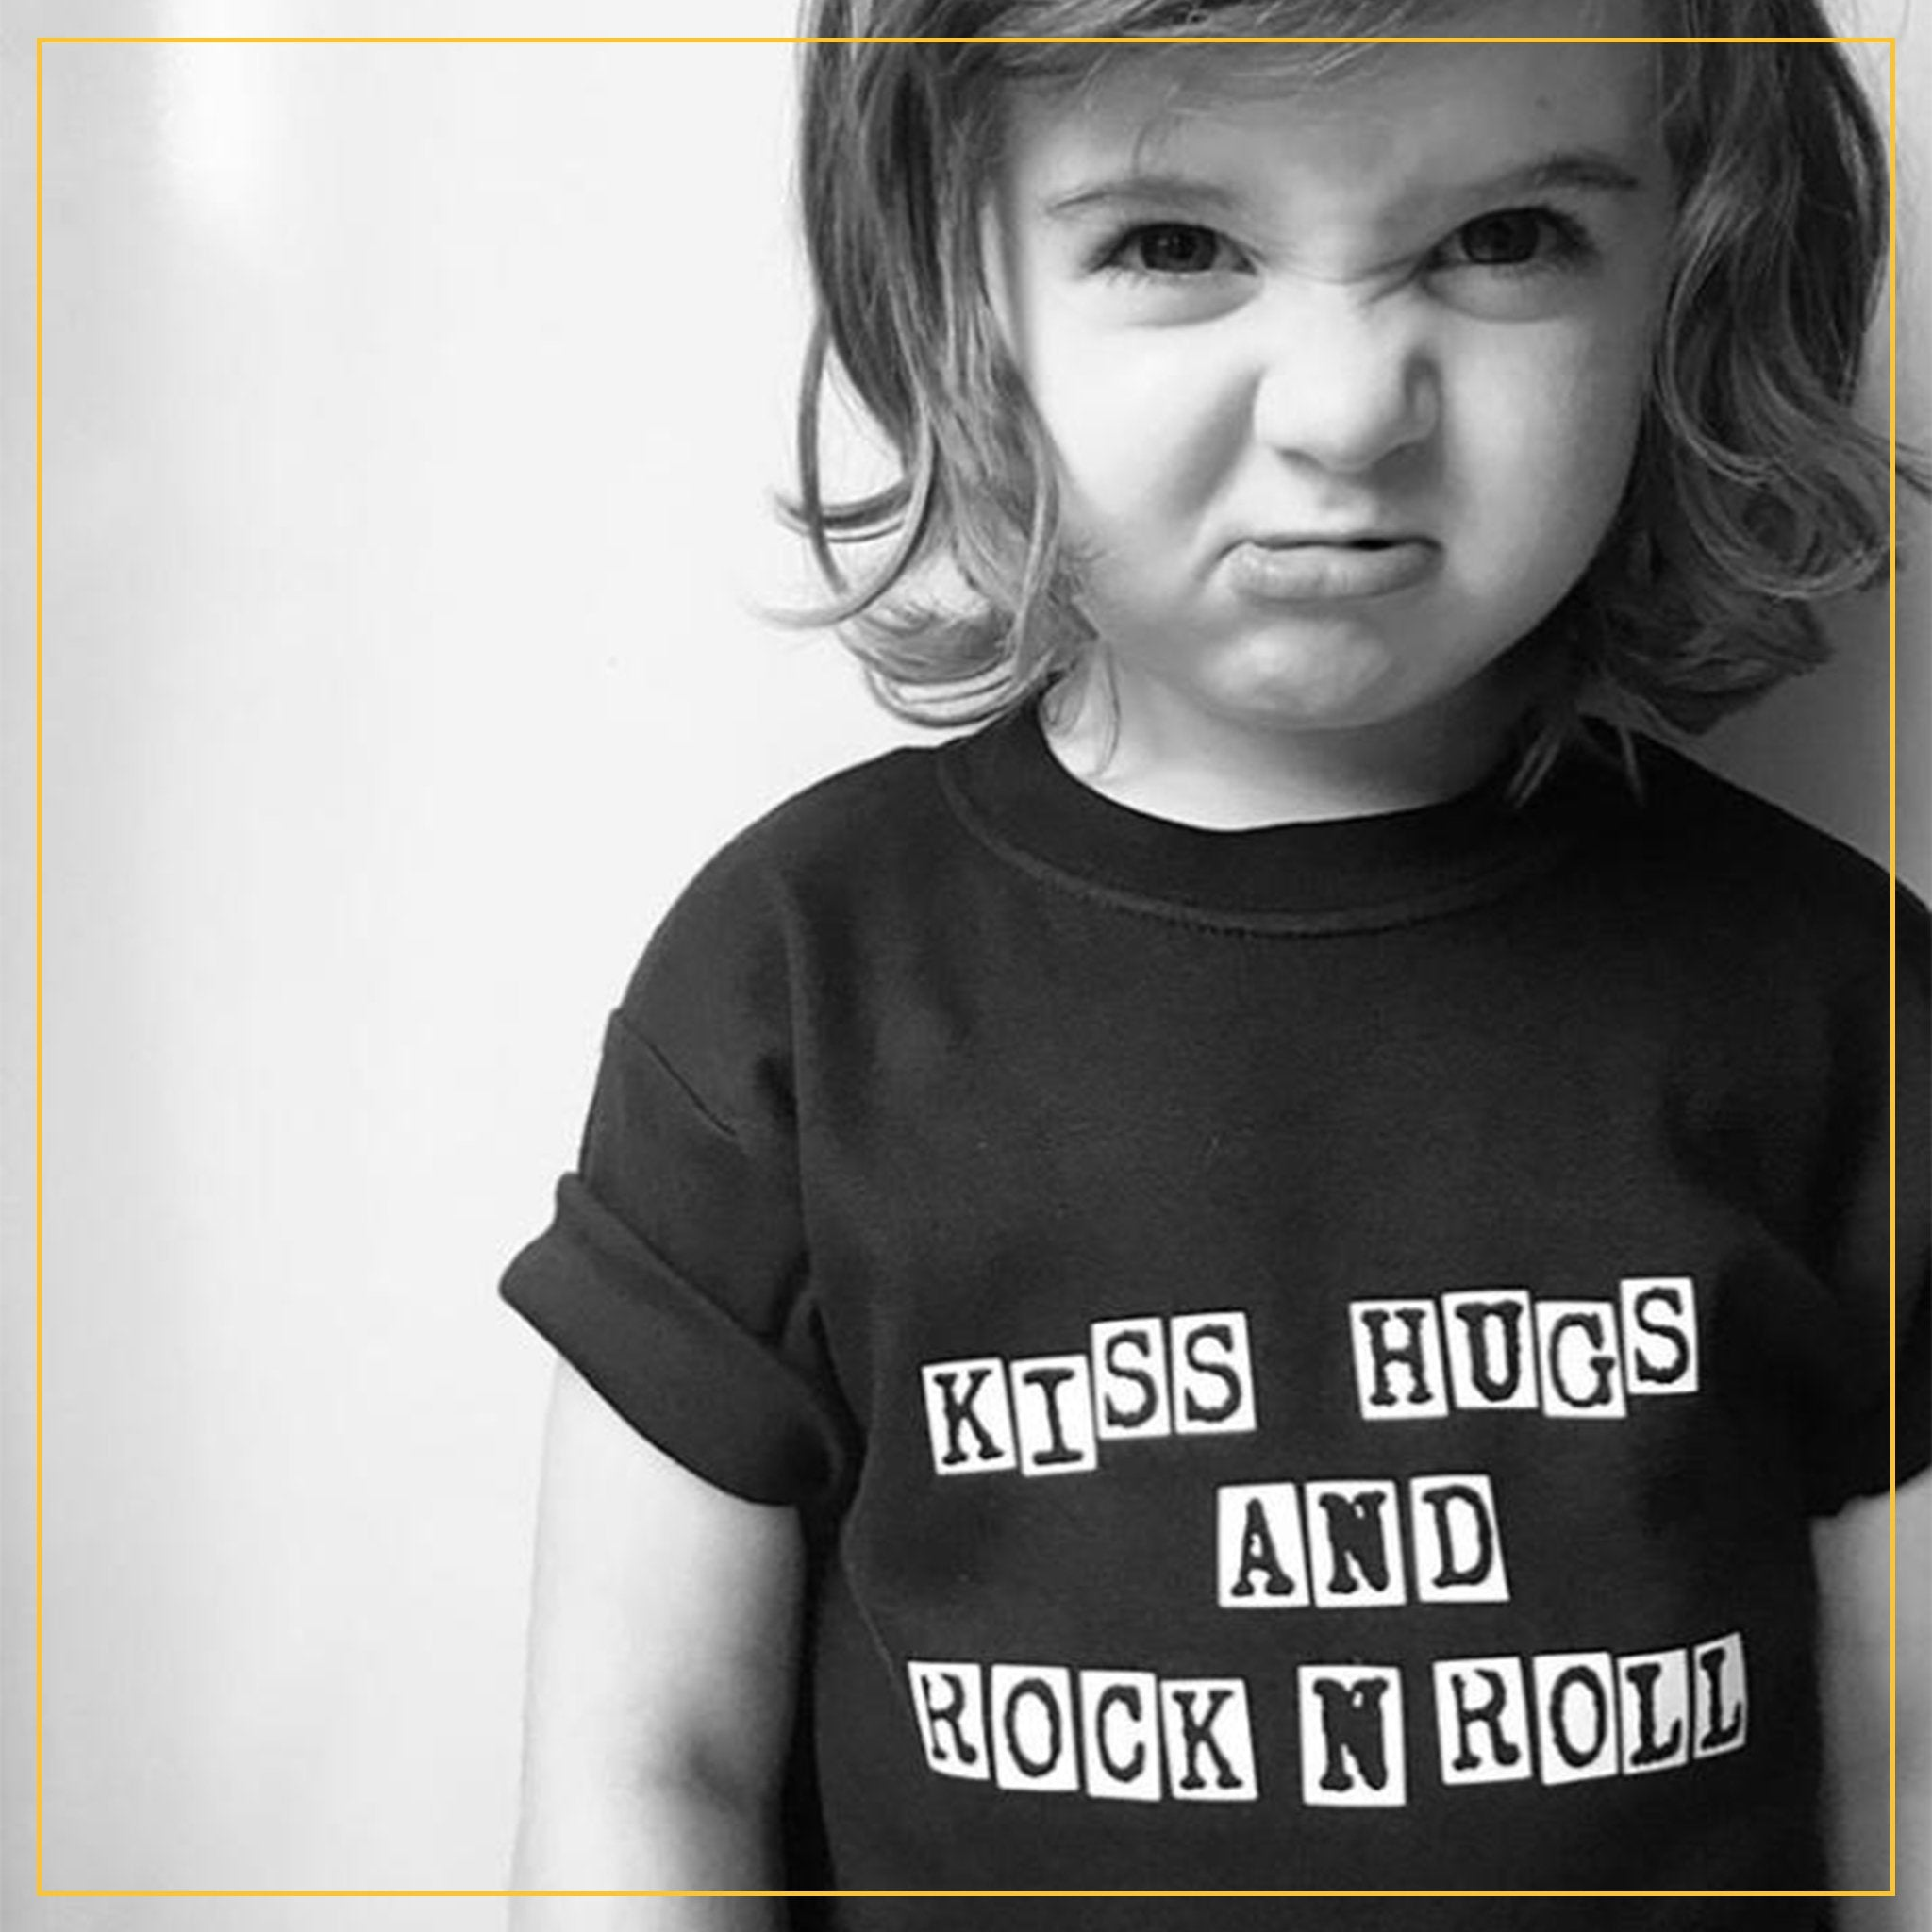 boy in a kiss hugs and rock n roll t-shirt